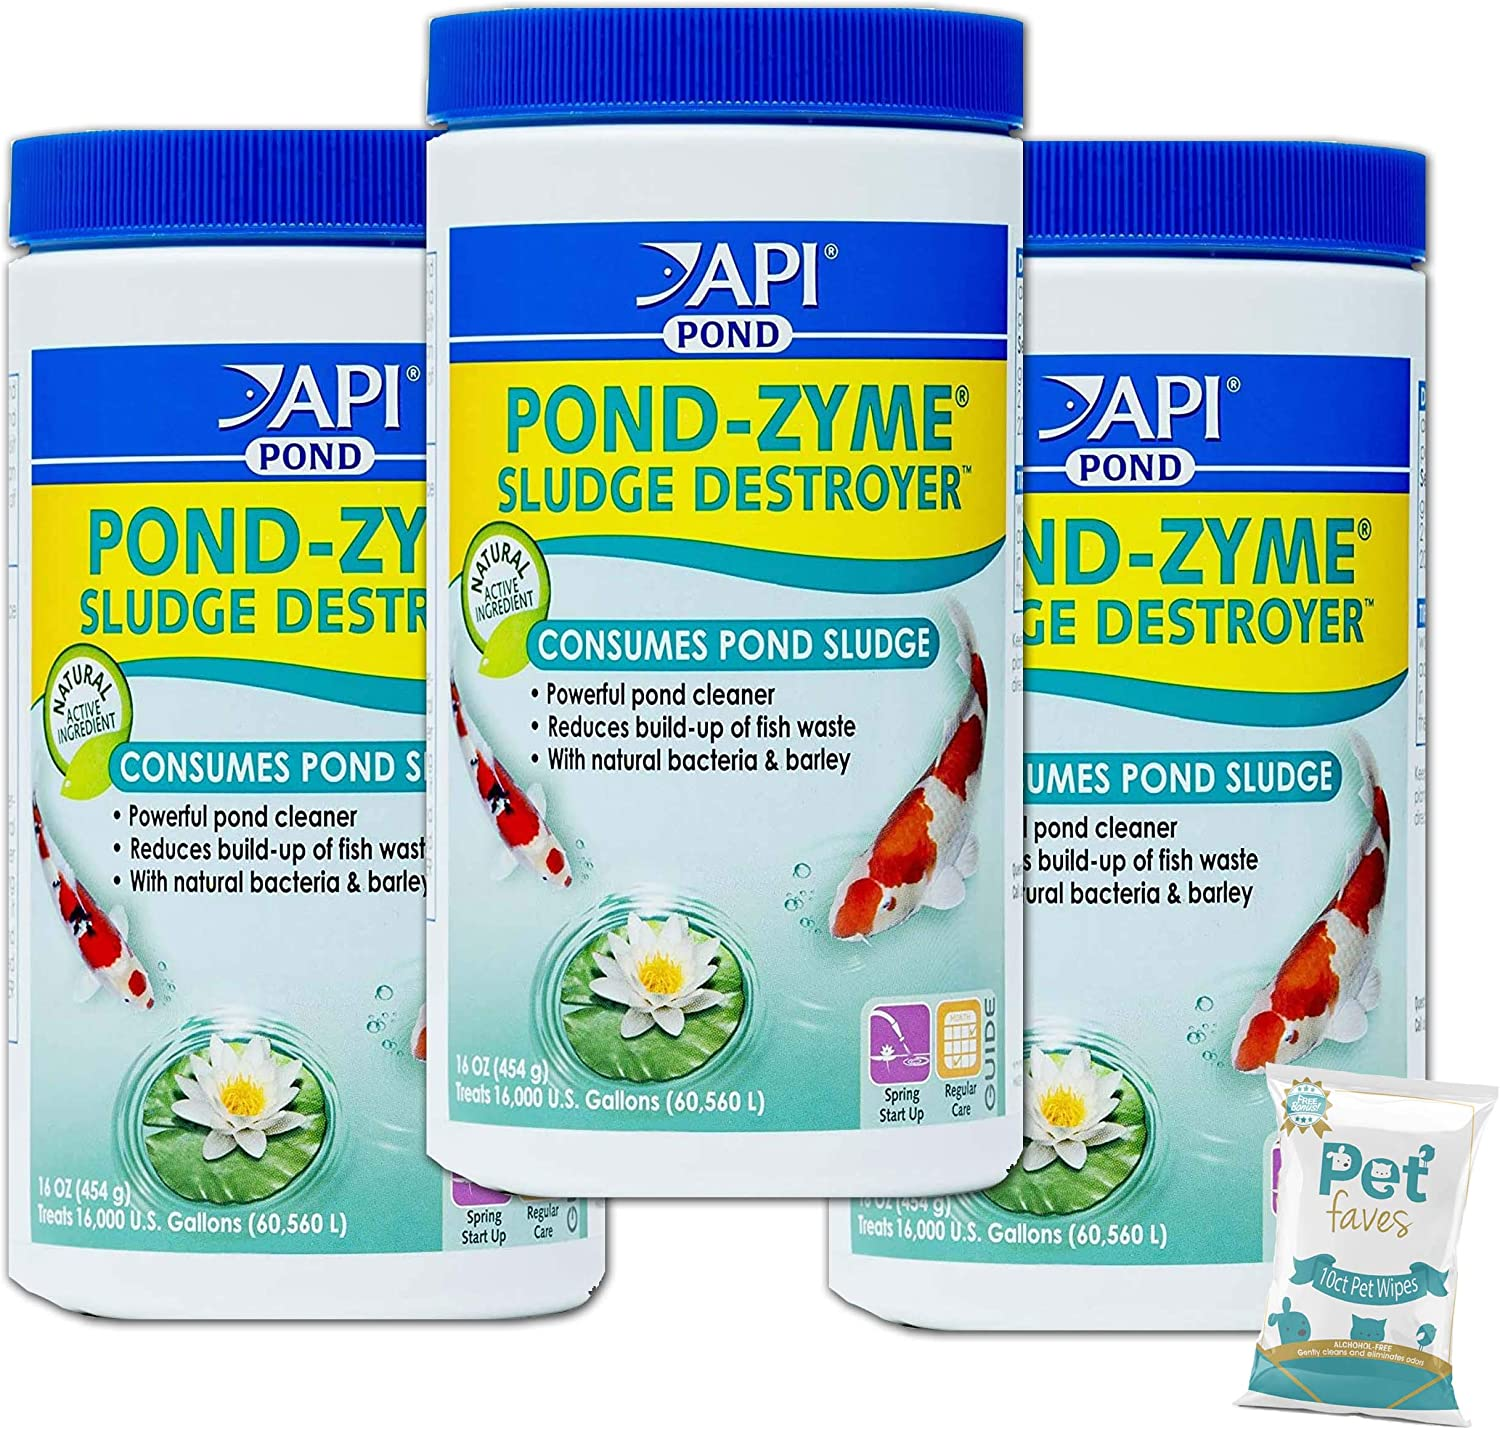 Pet Faves (3 Pack) API Pond-Zyme Sludge Destroyer Pond Cleaner with Natural Pond Bacteria & Barley (1Lb Each) with 10ct Wipes